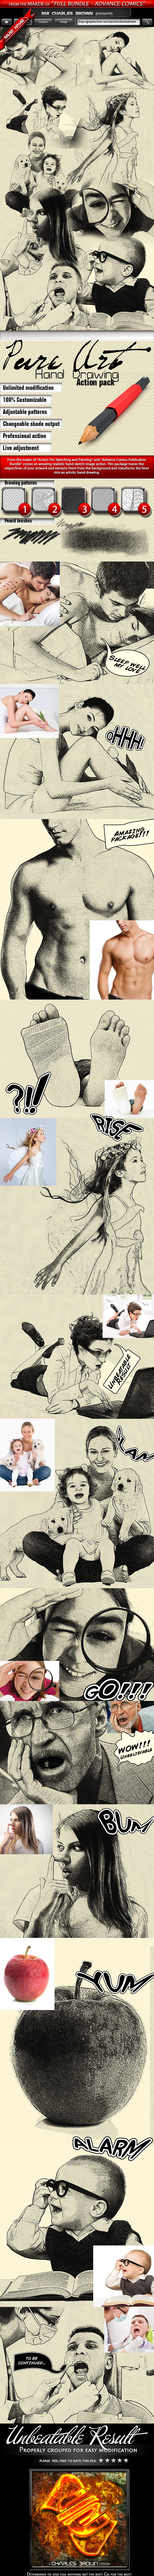 Pure art hand drawing by mrcharlesbrown graphicriver pure art hand drawing malvernweather Image collections